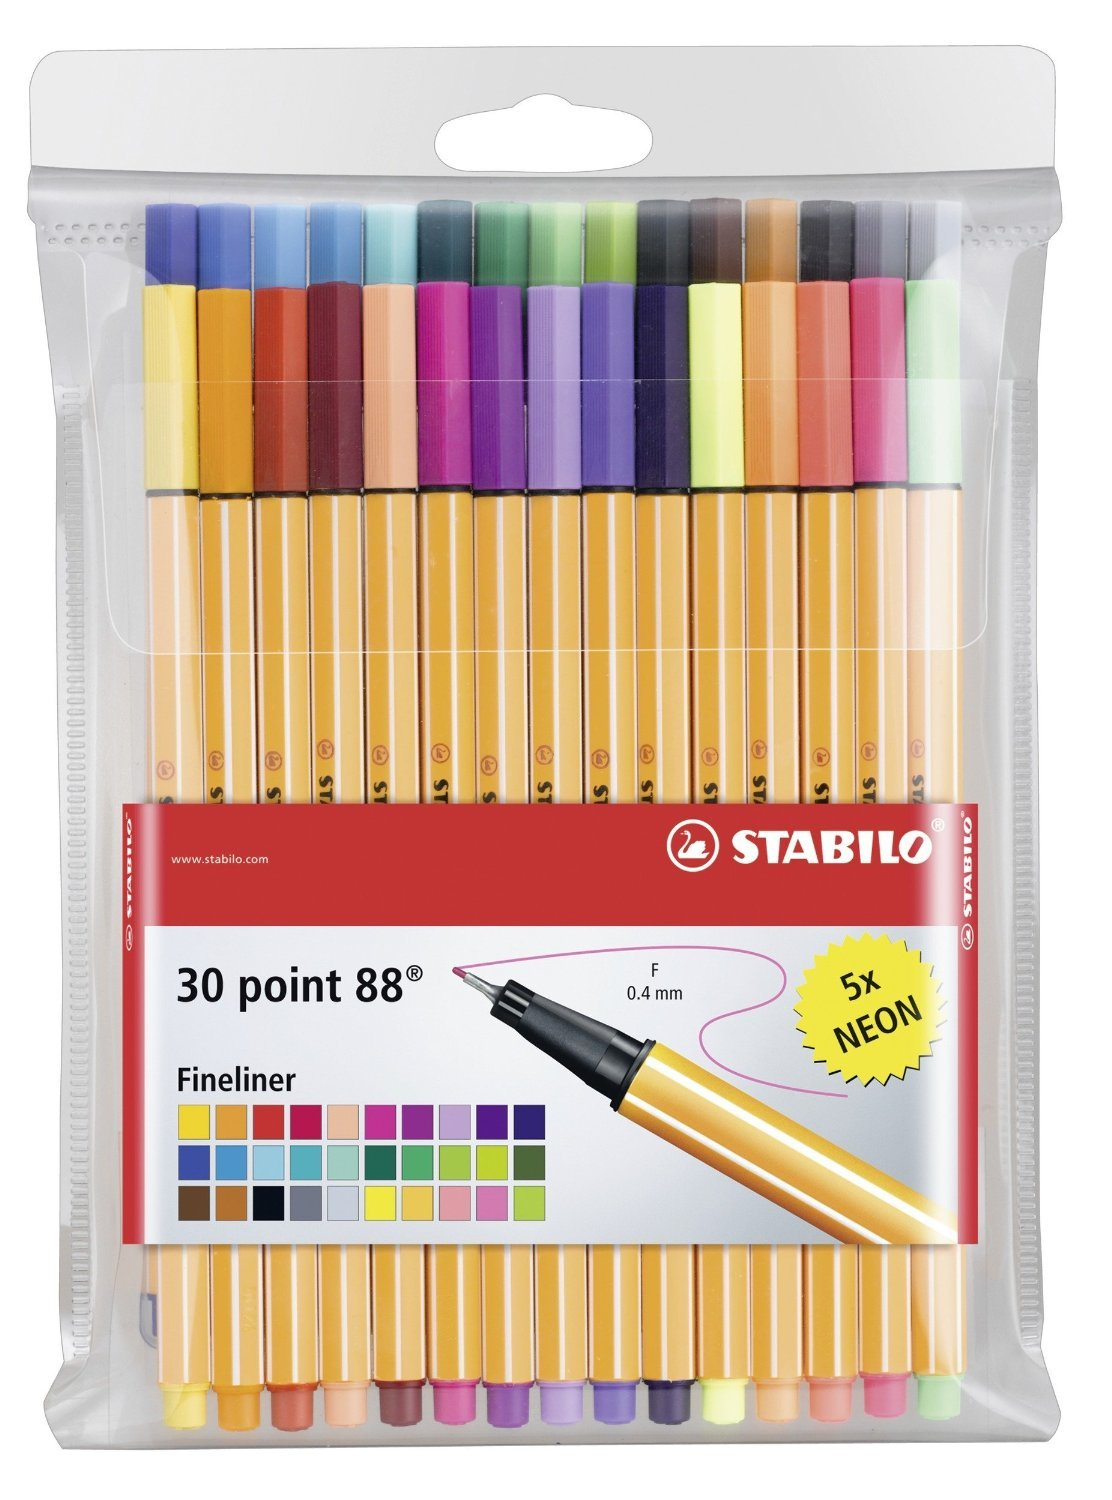 Stabilo Pens Item 8830-1 Point 88-Fine Point-30 Color Wallet of Coloring Pens/Fineline Markers-Includes 30 Unique Colors (3-Pack) by Stabilo (Image #1)